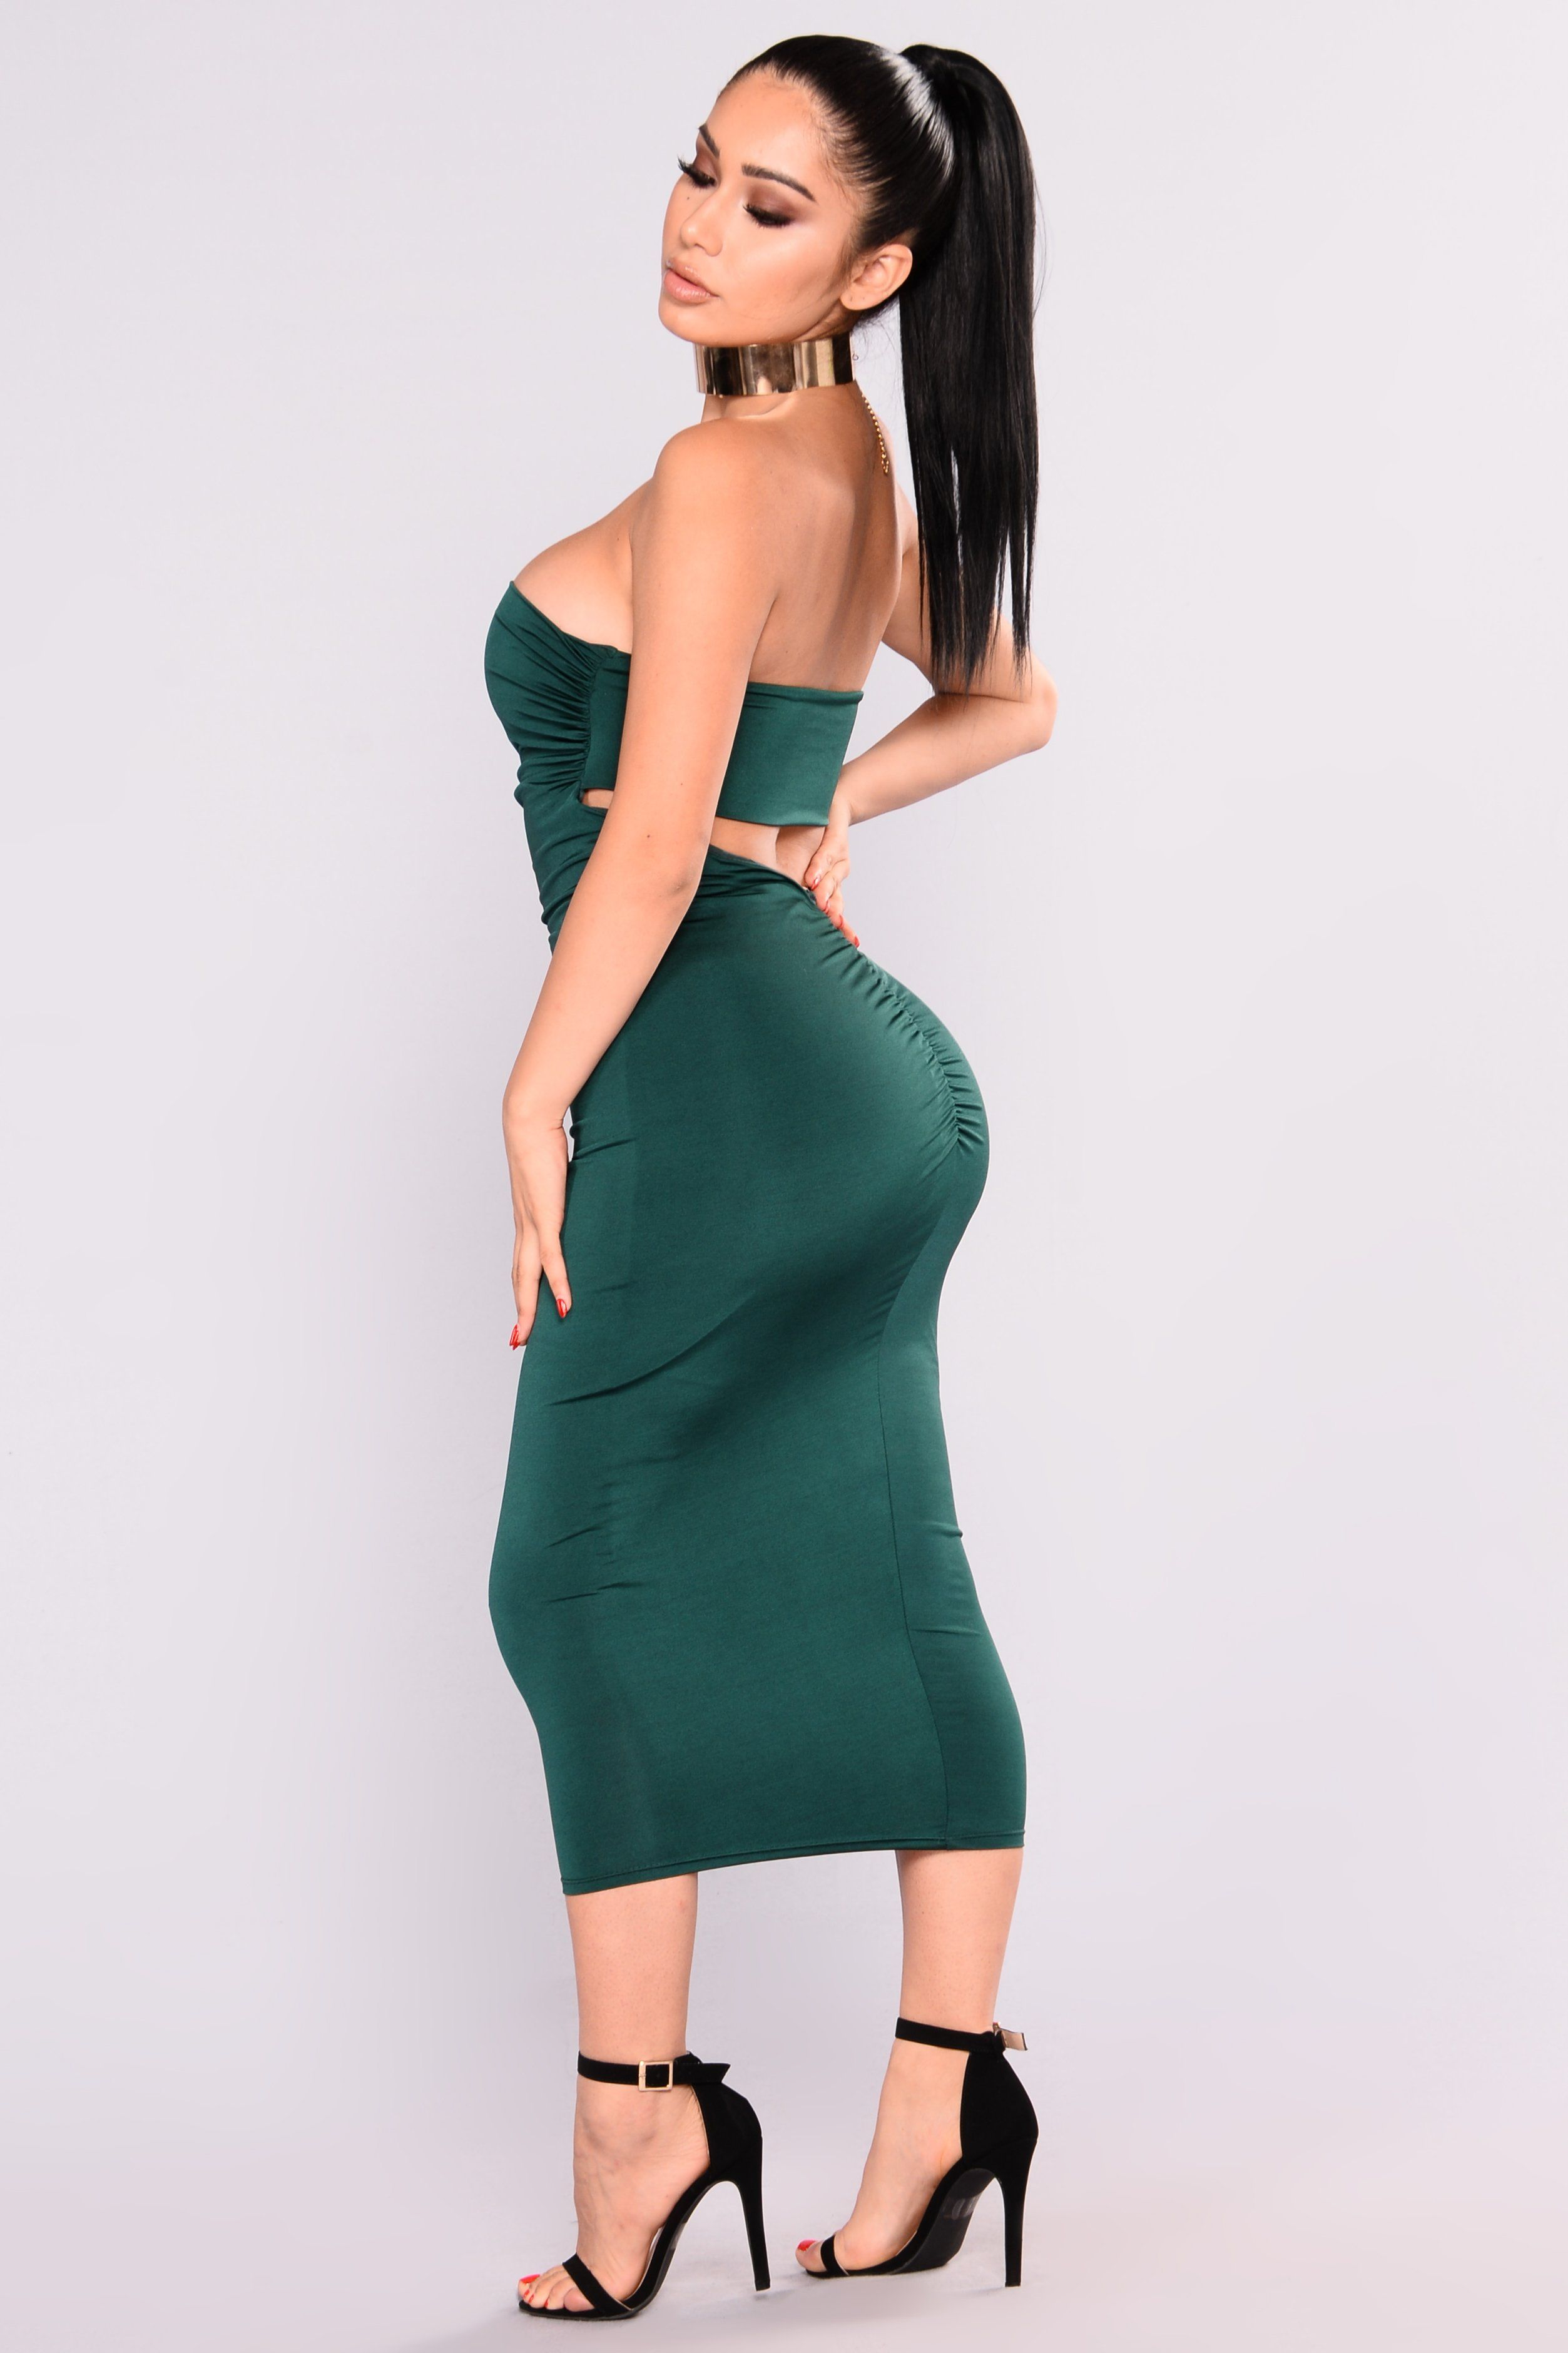 630ba0b6ccd8 Available In Cognac And Hunter Green Strapless Midi Dress Ruched Detailing  Open Back Design Shell: 96% Polyester 4% Spandex Lining: 100% Polyester  Made In ...